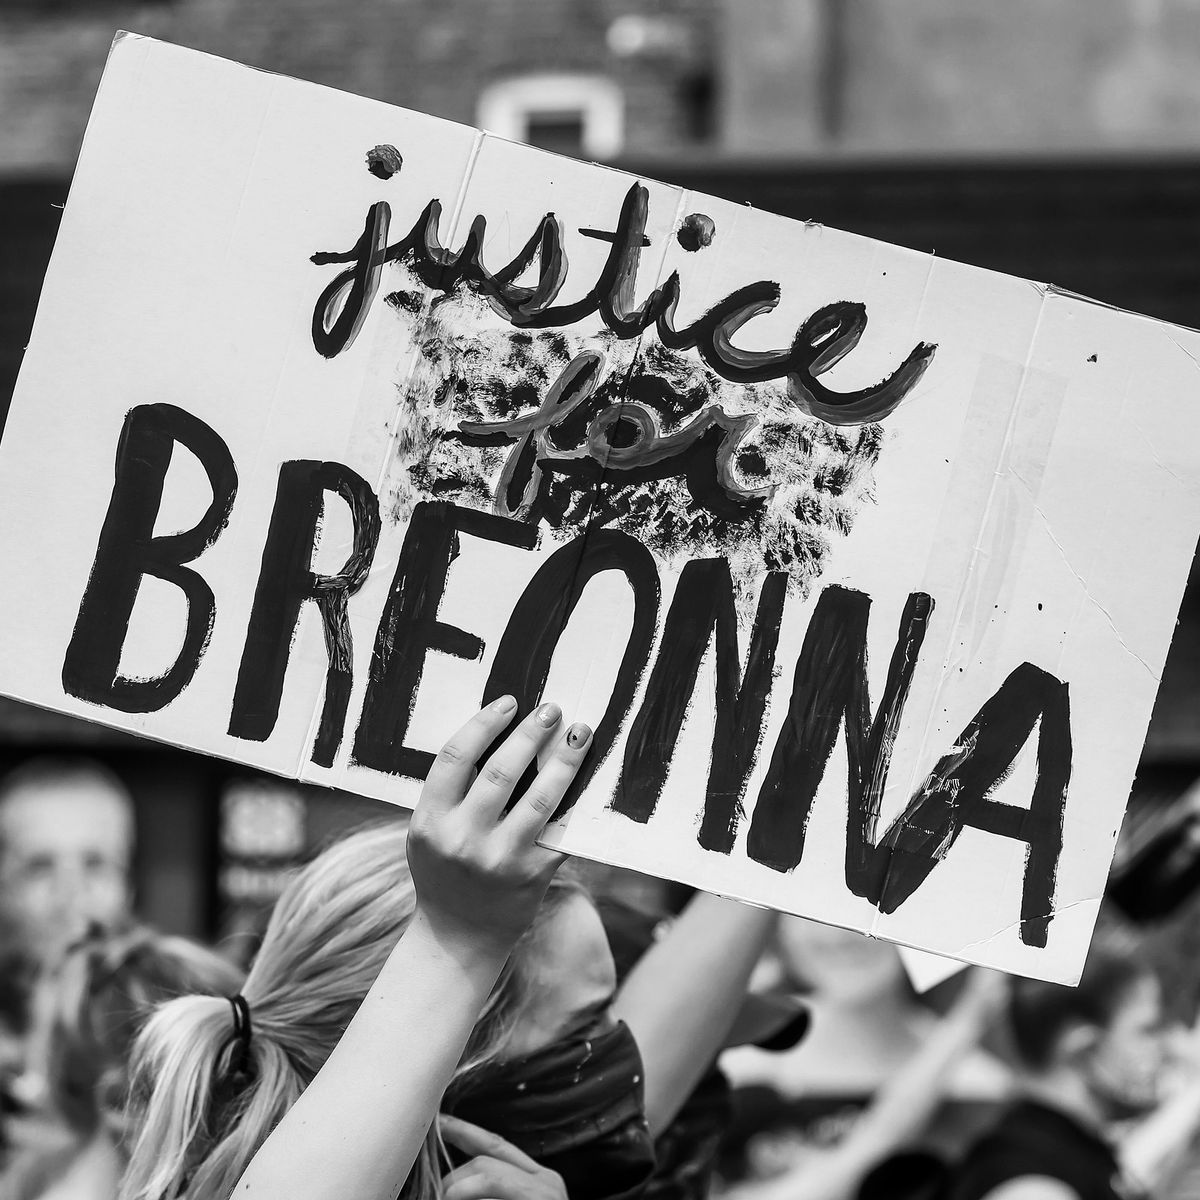 The Officers Who Killed Breonna Taylor Haven T Been Charged